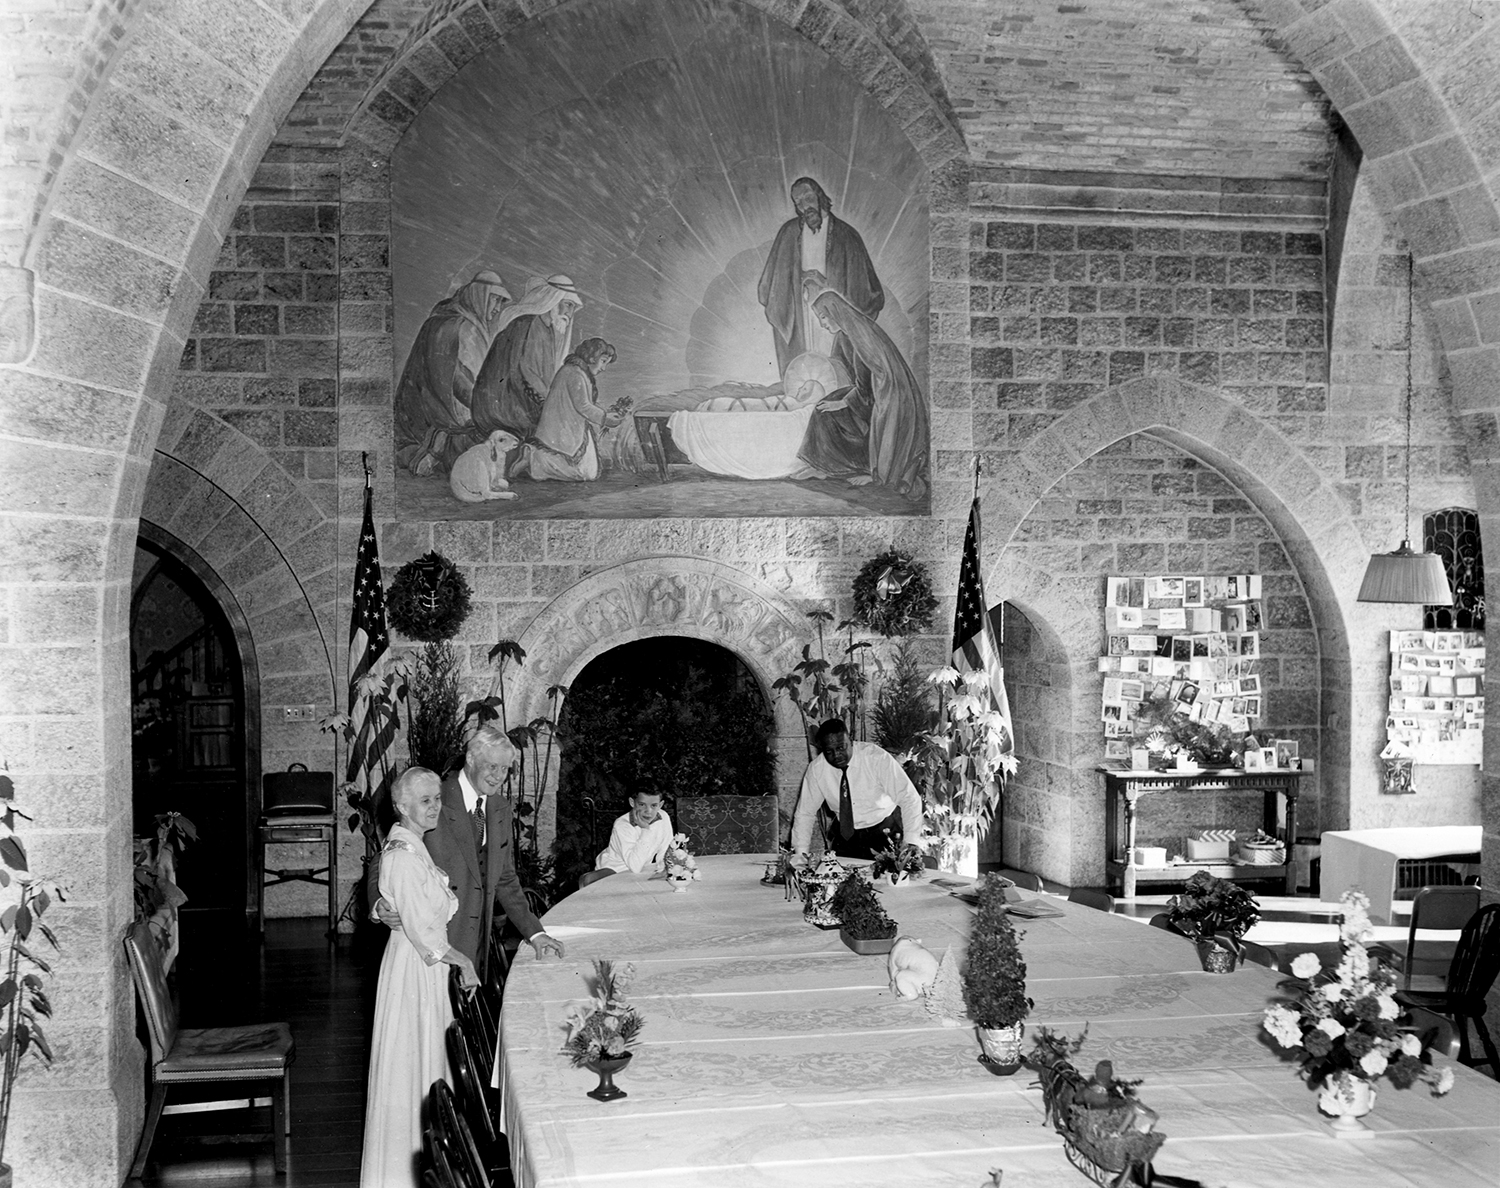 "Figure 3: Raymond and Mildred Pitcairn (left) in the Upper Hall of Glencairn during preparations for Christmas dinner in 1961. The Upper Hall was used as a dining room, and for holiday meals several tables were placed end to end to accommodate dozens of guests. Several of the table decorations are now in the collection of Glencairn Museum, and are included in the ""Christmas in the Castle"" tour. Christmas cards from friends and relatives were displayed on bulletin boards fastened to the wall."